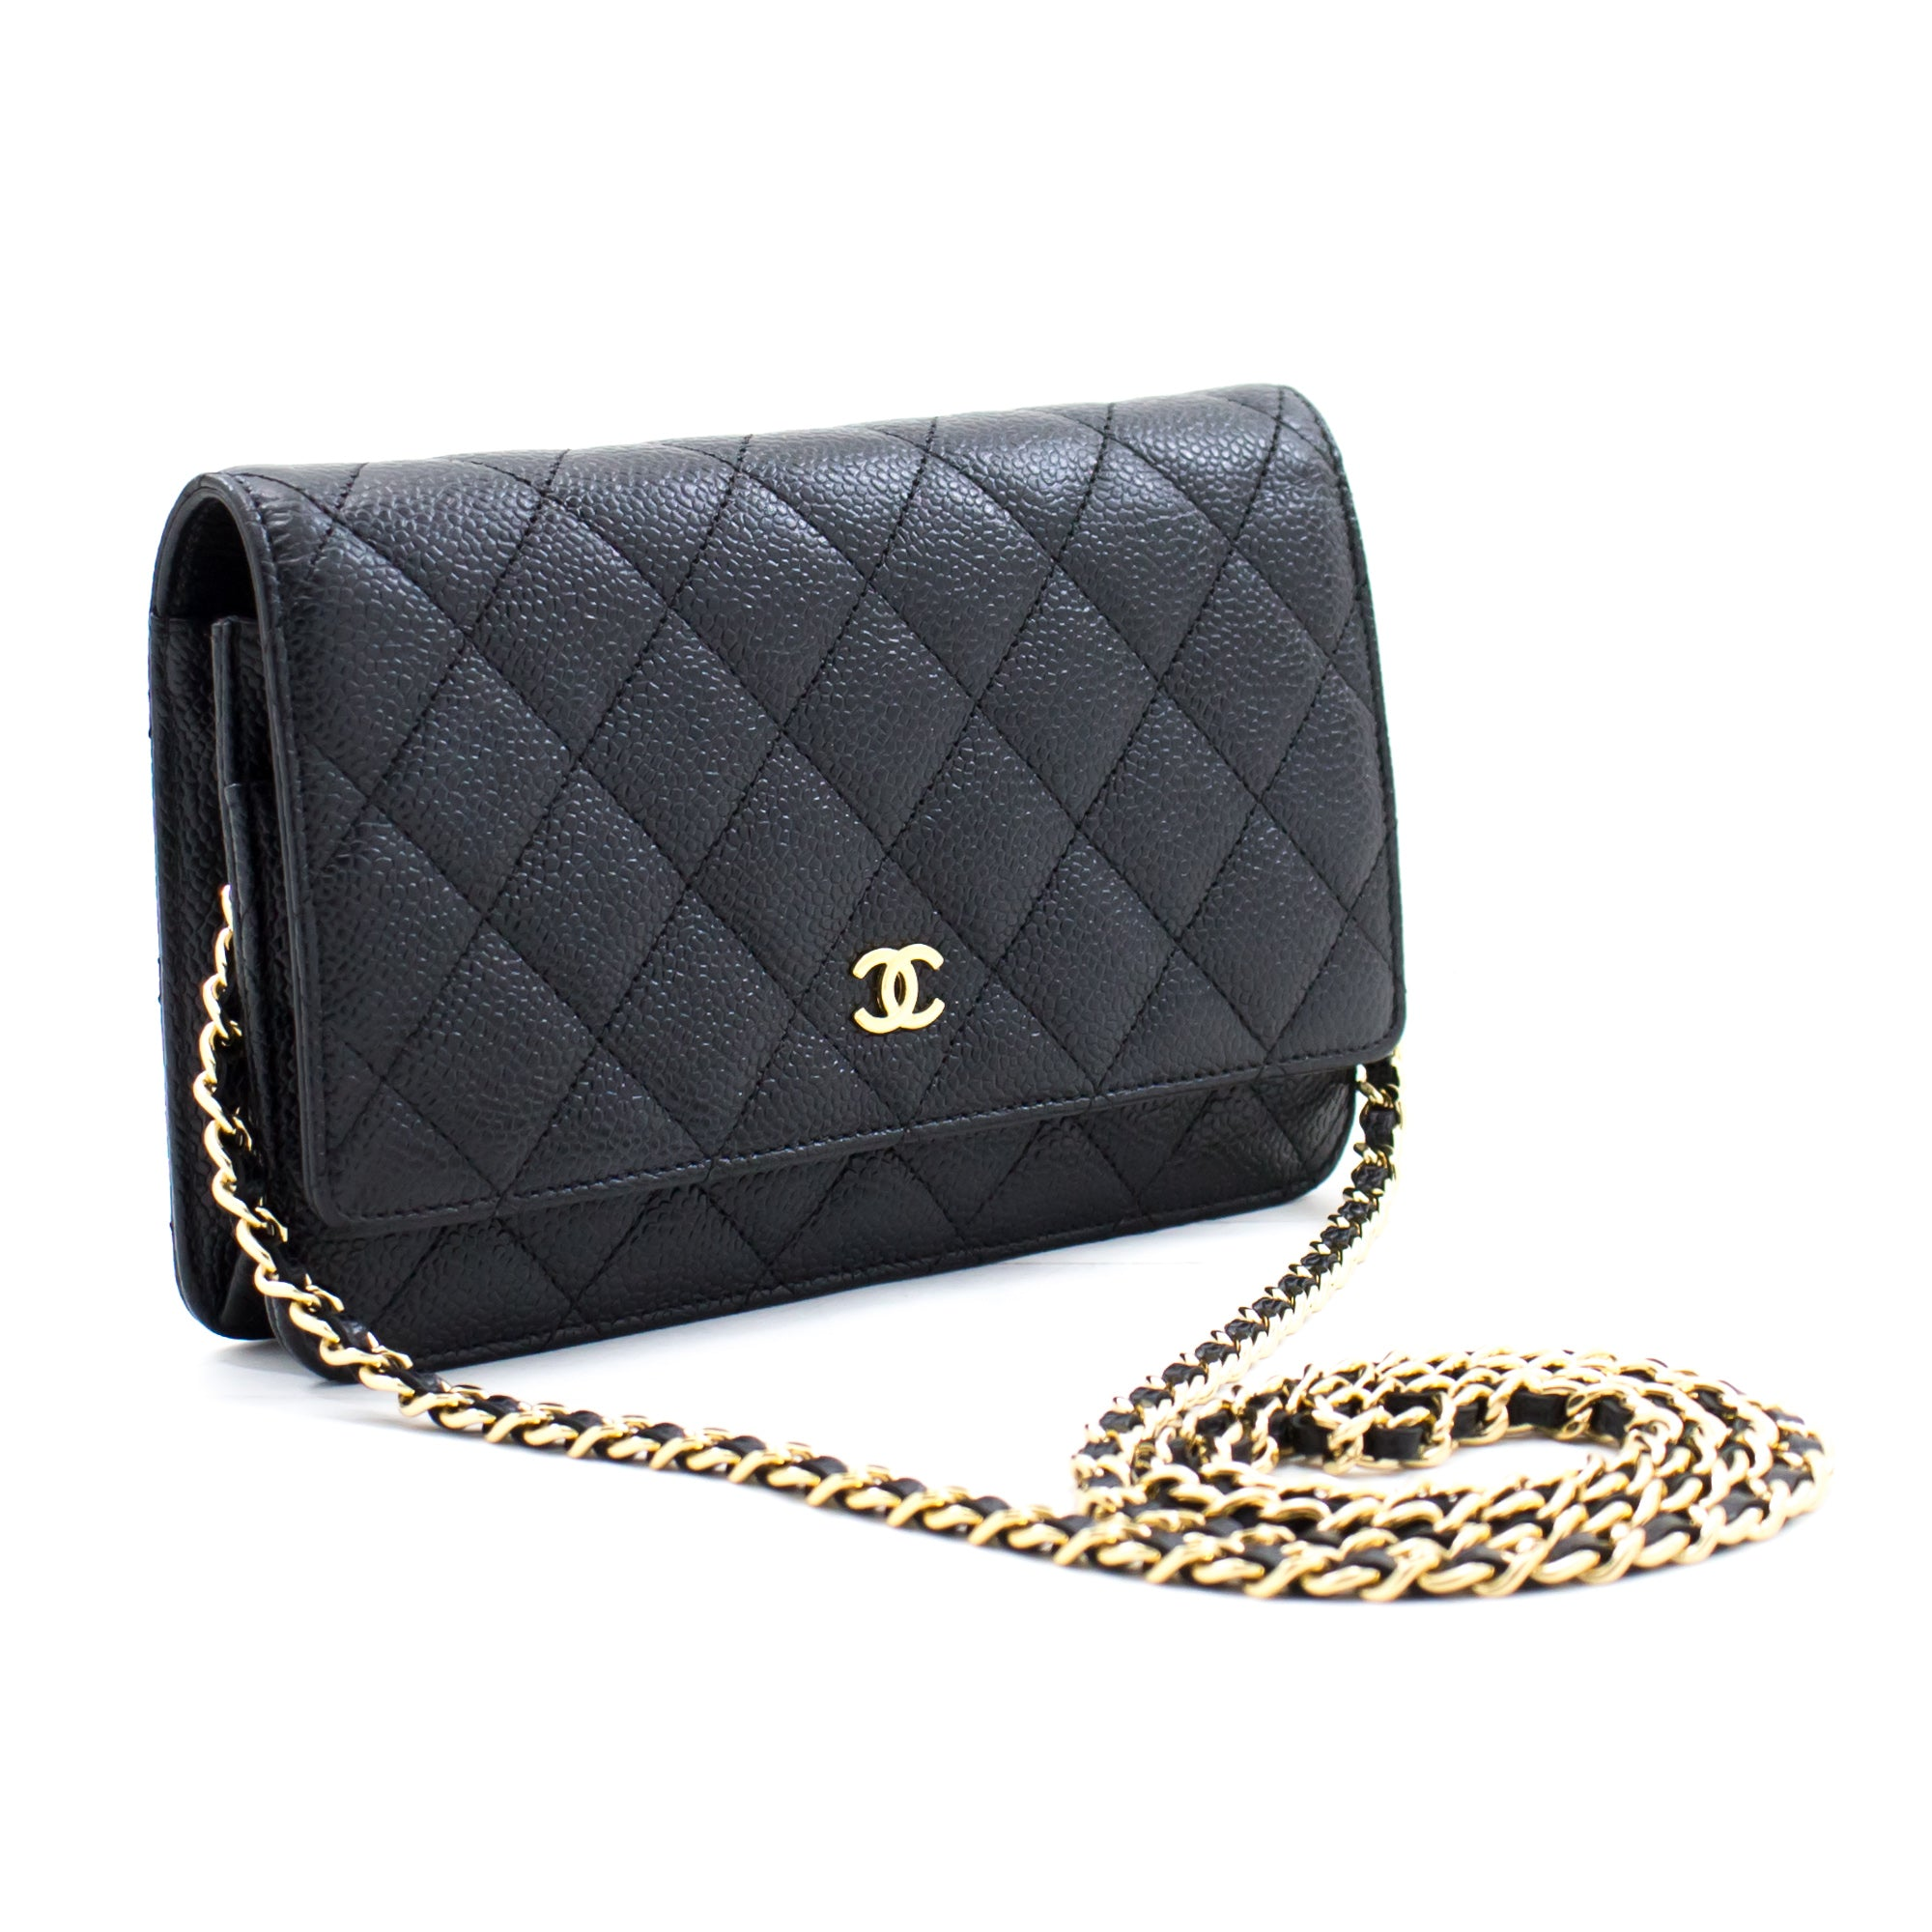 3623b969a33d ... CHANEL Bubble Quilt Chain Shoulder Bag Black Lambskin Leather SV L57- Chanel-hannari- ...